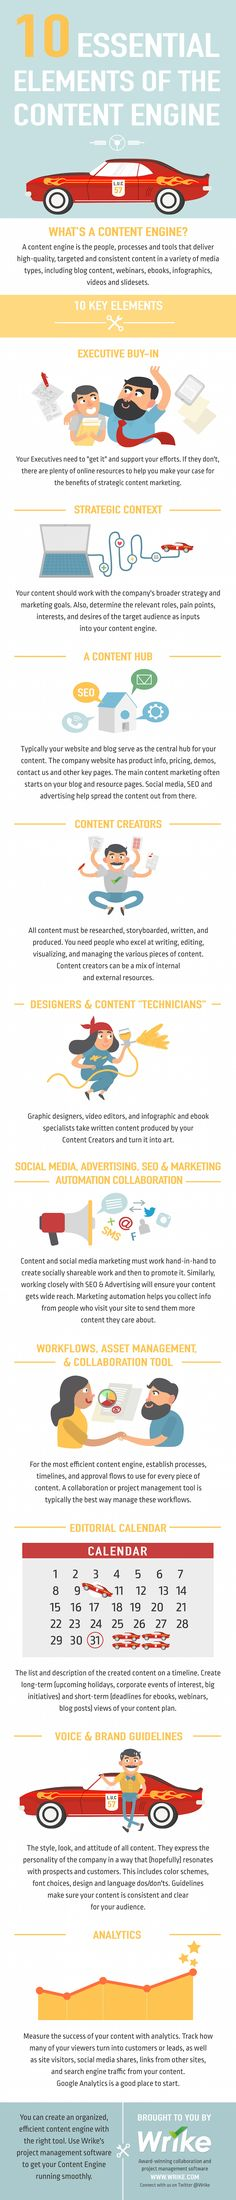 """Content marketing is a critical component of many companies' marketing strategies. For those who are trying to build a """"content engine"""" this infographic is for you."""